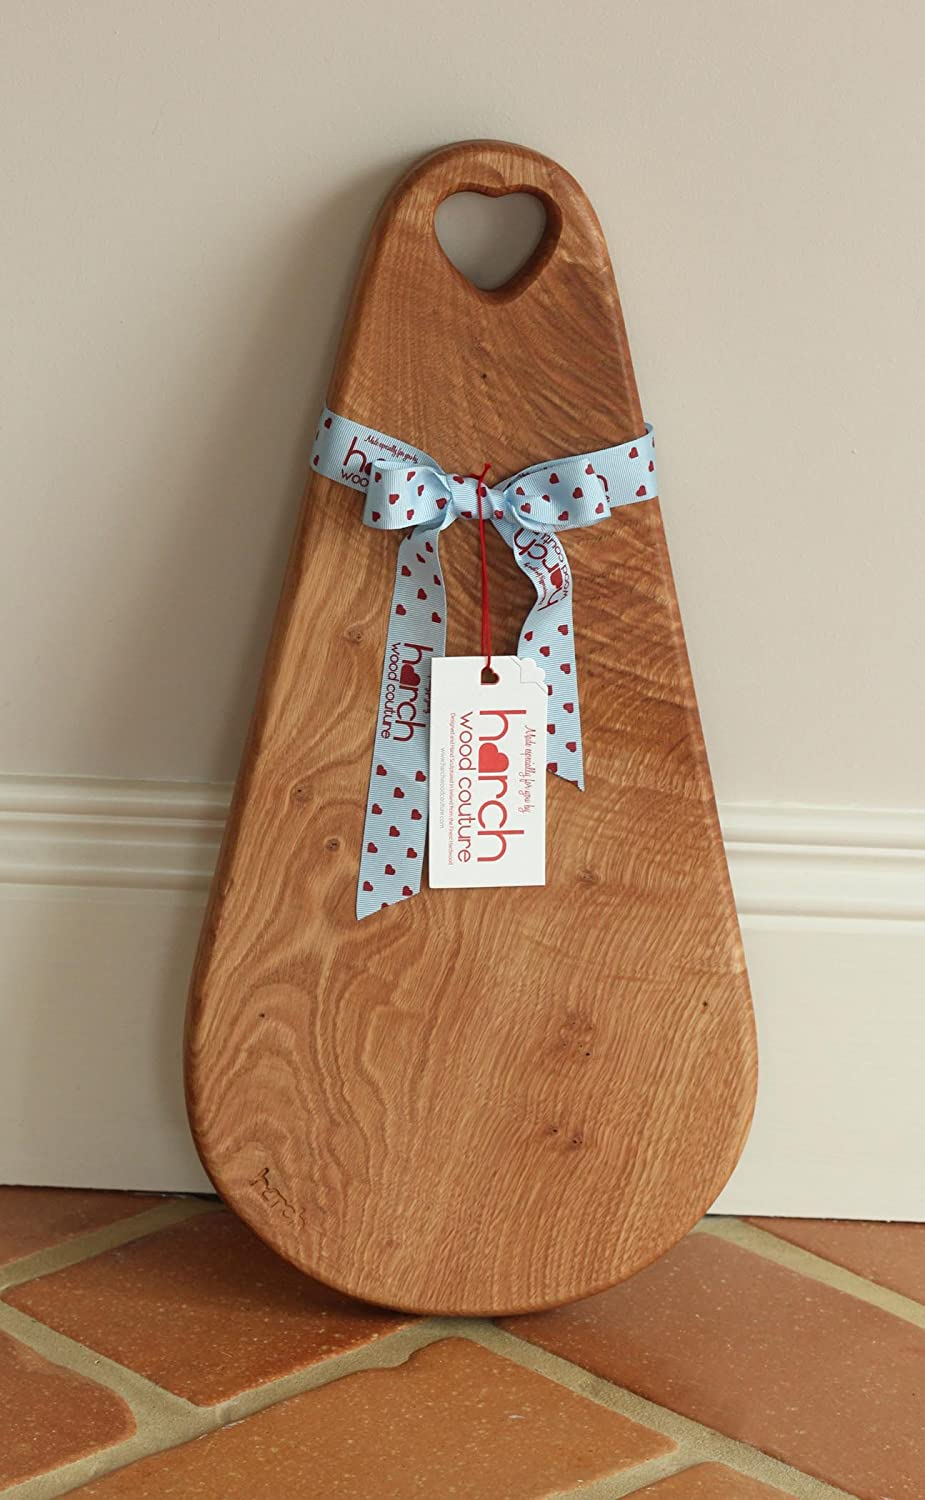 Harch Wood Couture Raindrop Chopping/Serving/Display Board, Dark Wood, Medium RAIN-AE